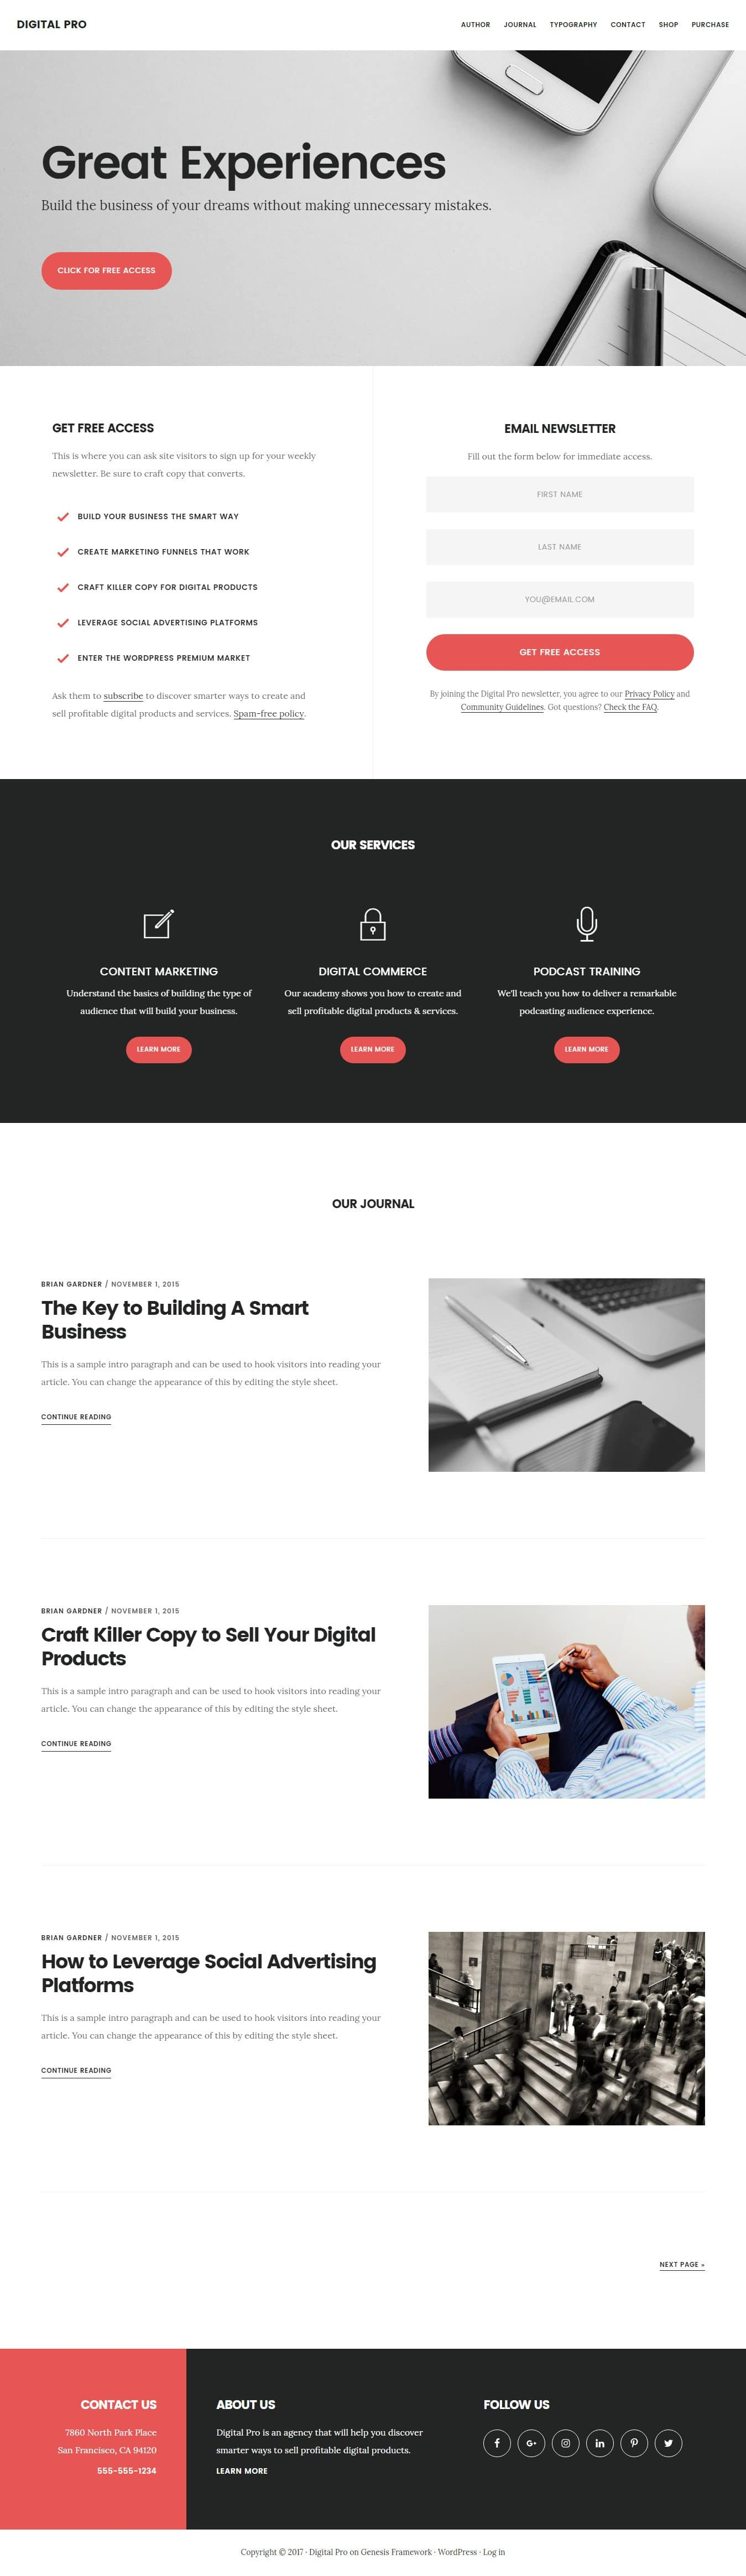 StudioPress Digital Pro Theme – A Professional Theme for Business